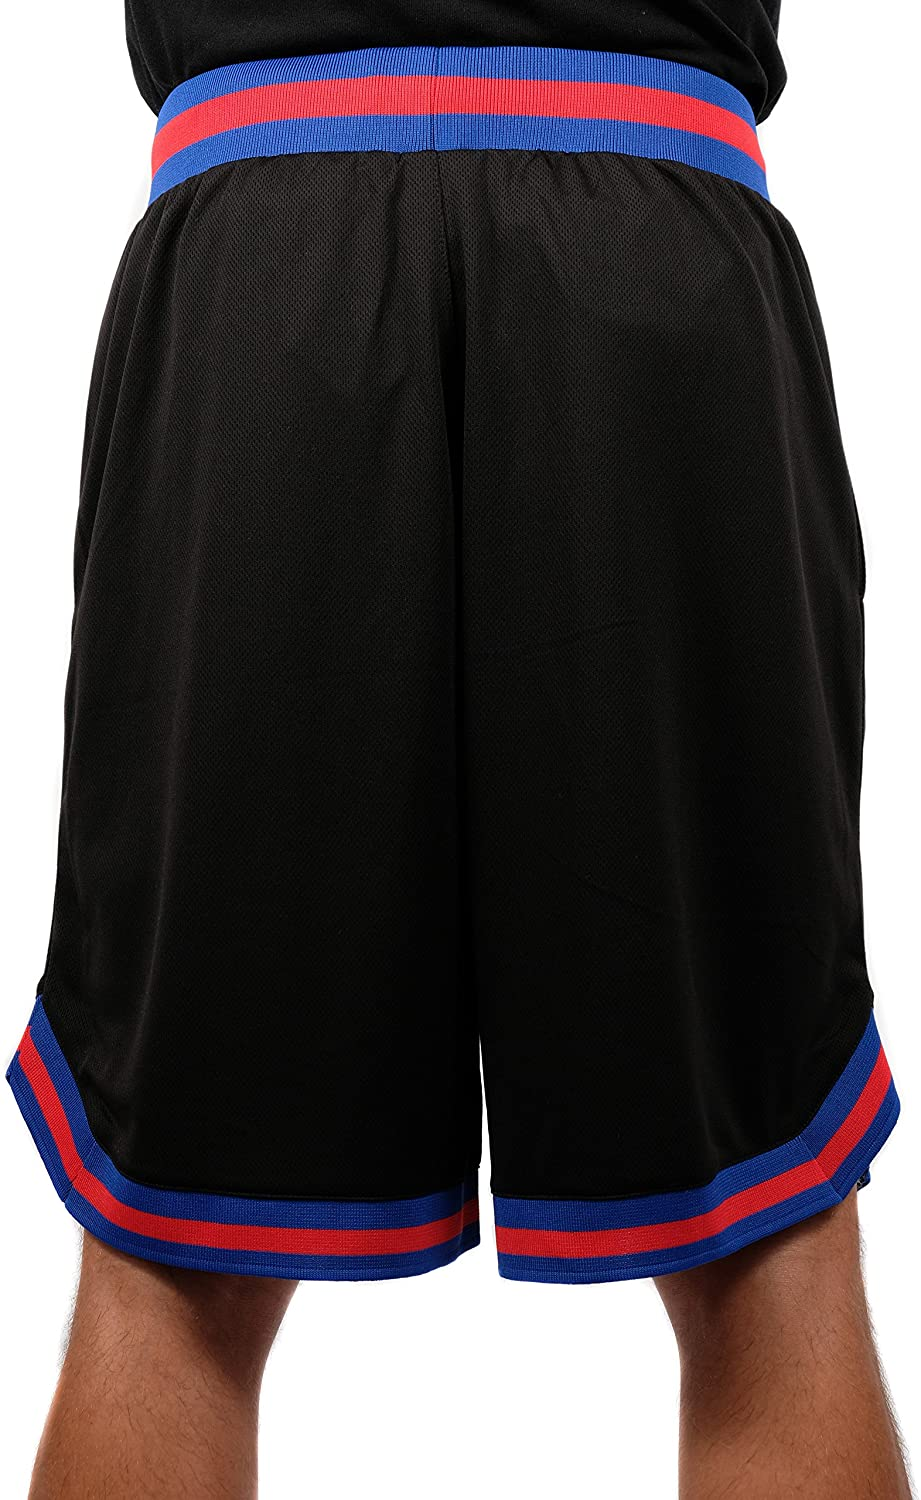 NBA Philadelphia 76ers Men's Basketball Shorts|Philadelphia 76ers